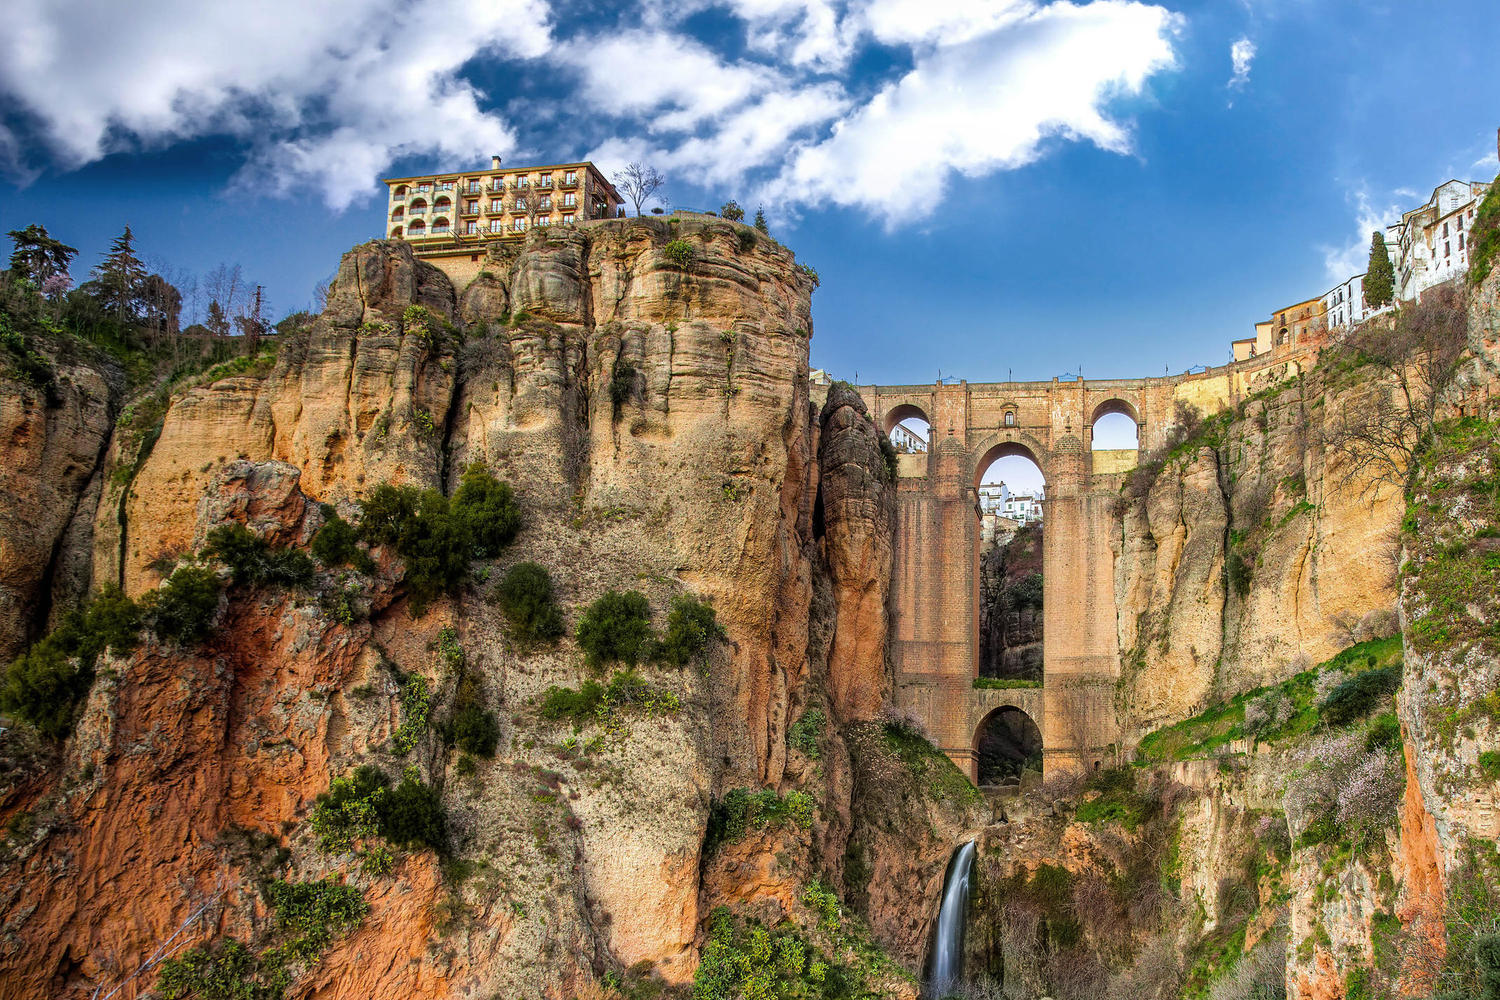 The famous cliffs of Ronda in Malaga province.